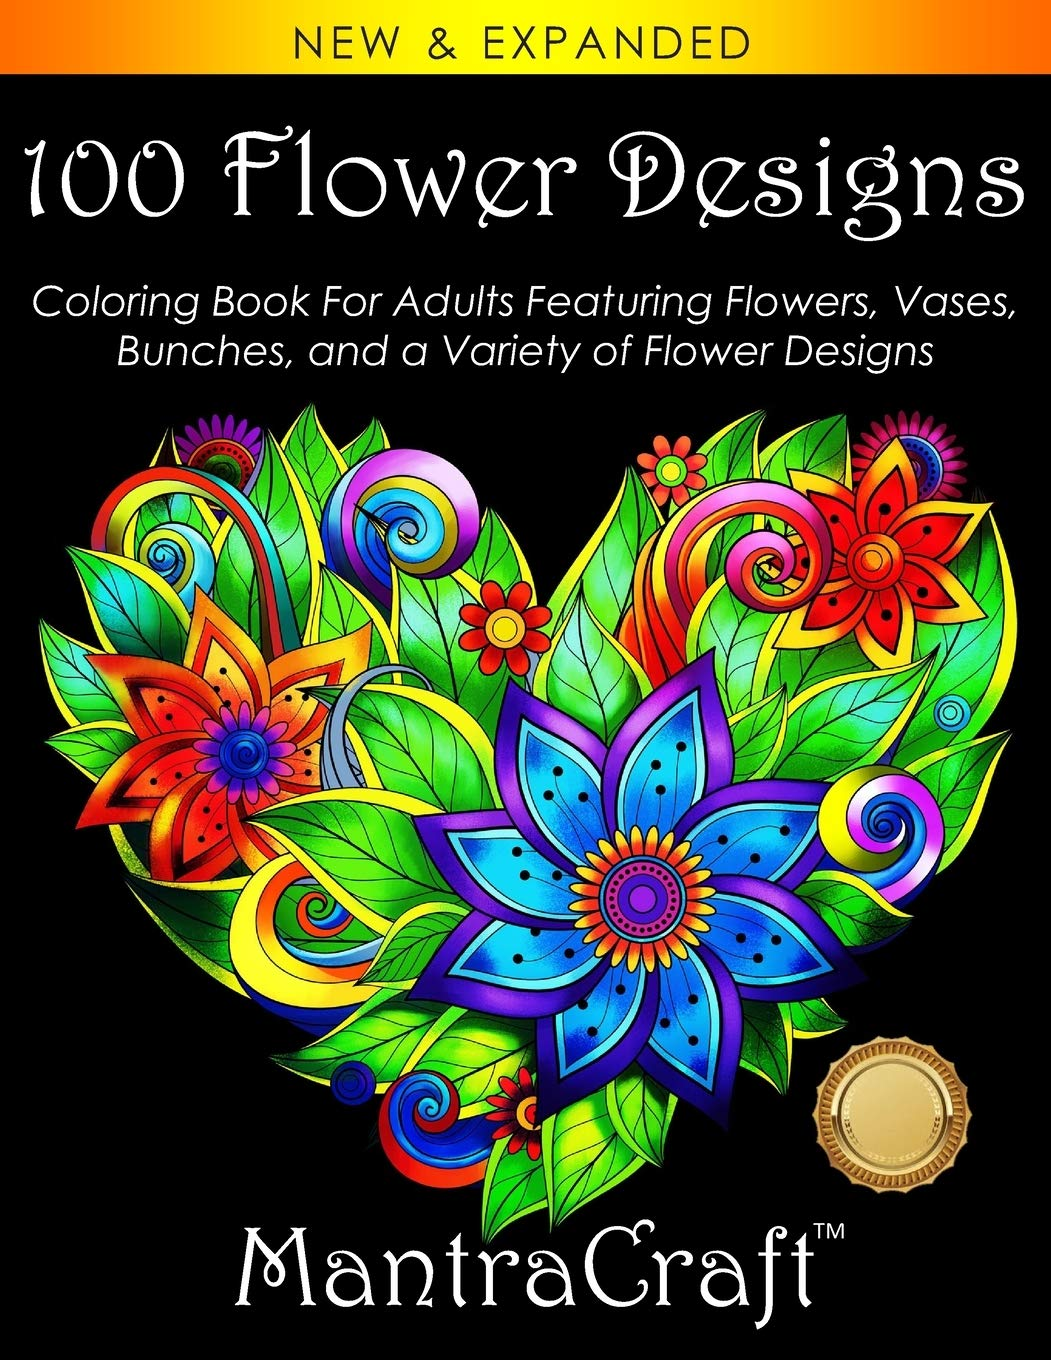 100 Flower Designs: Coloring Book For Adults Featuring Flowers, Vases, Bunches, and a Variety of Flower Designs (Adult Coloring Books)